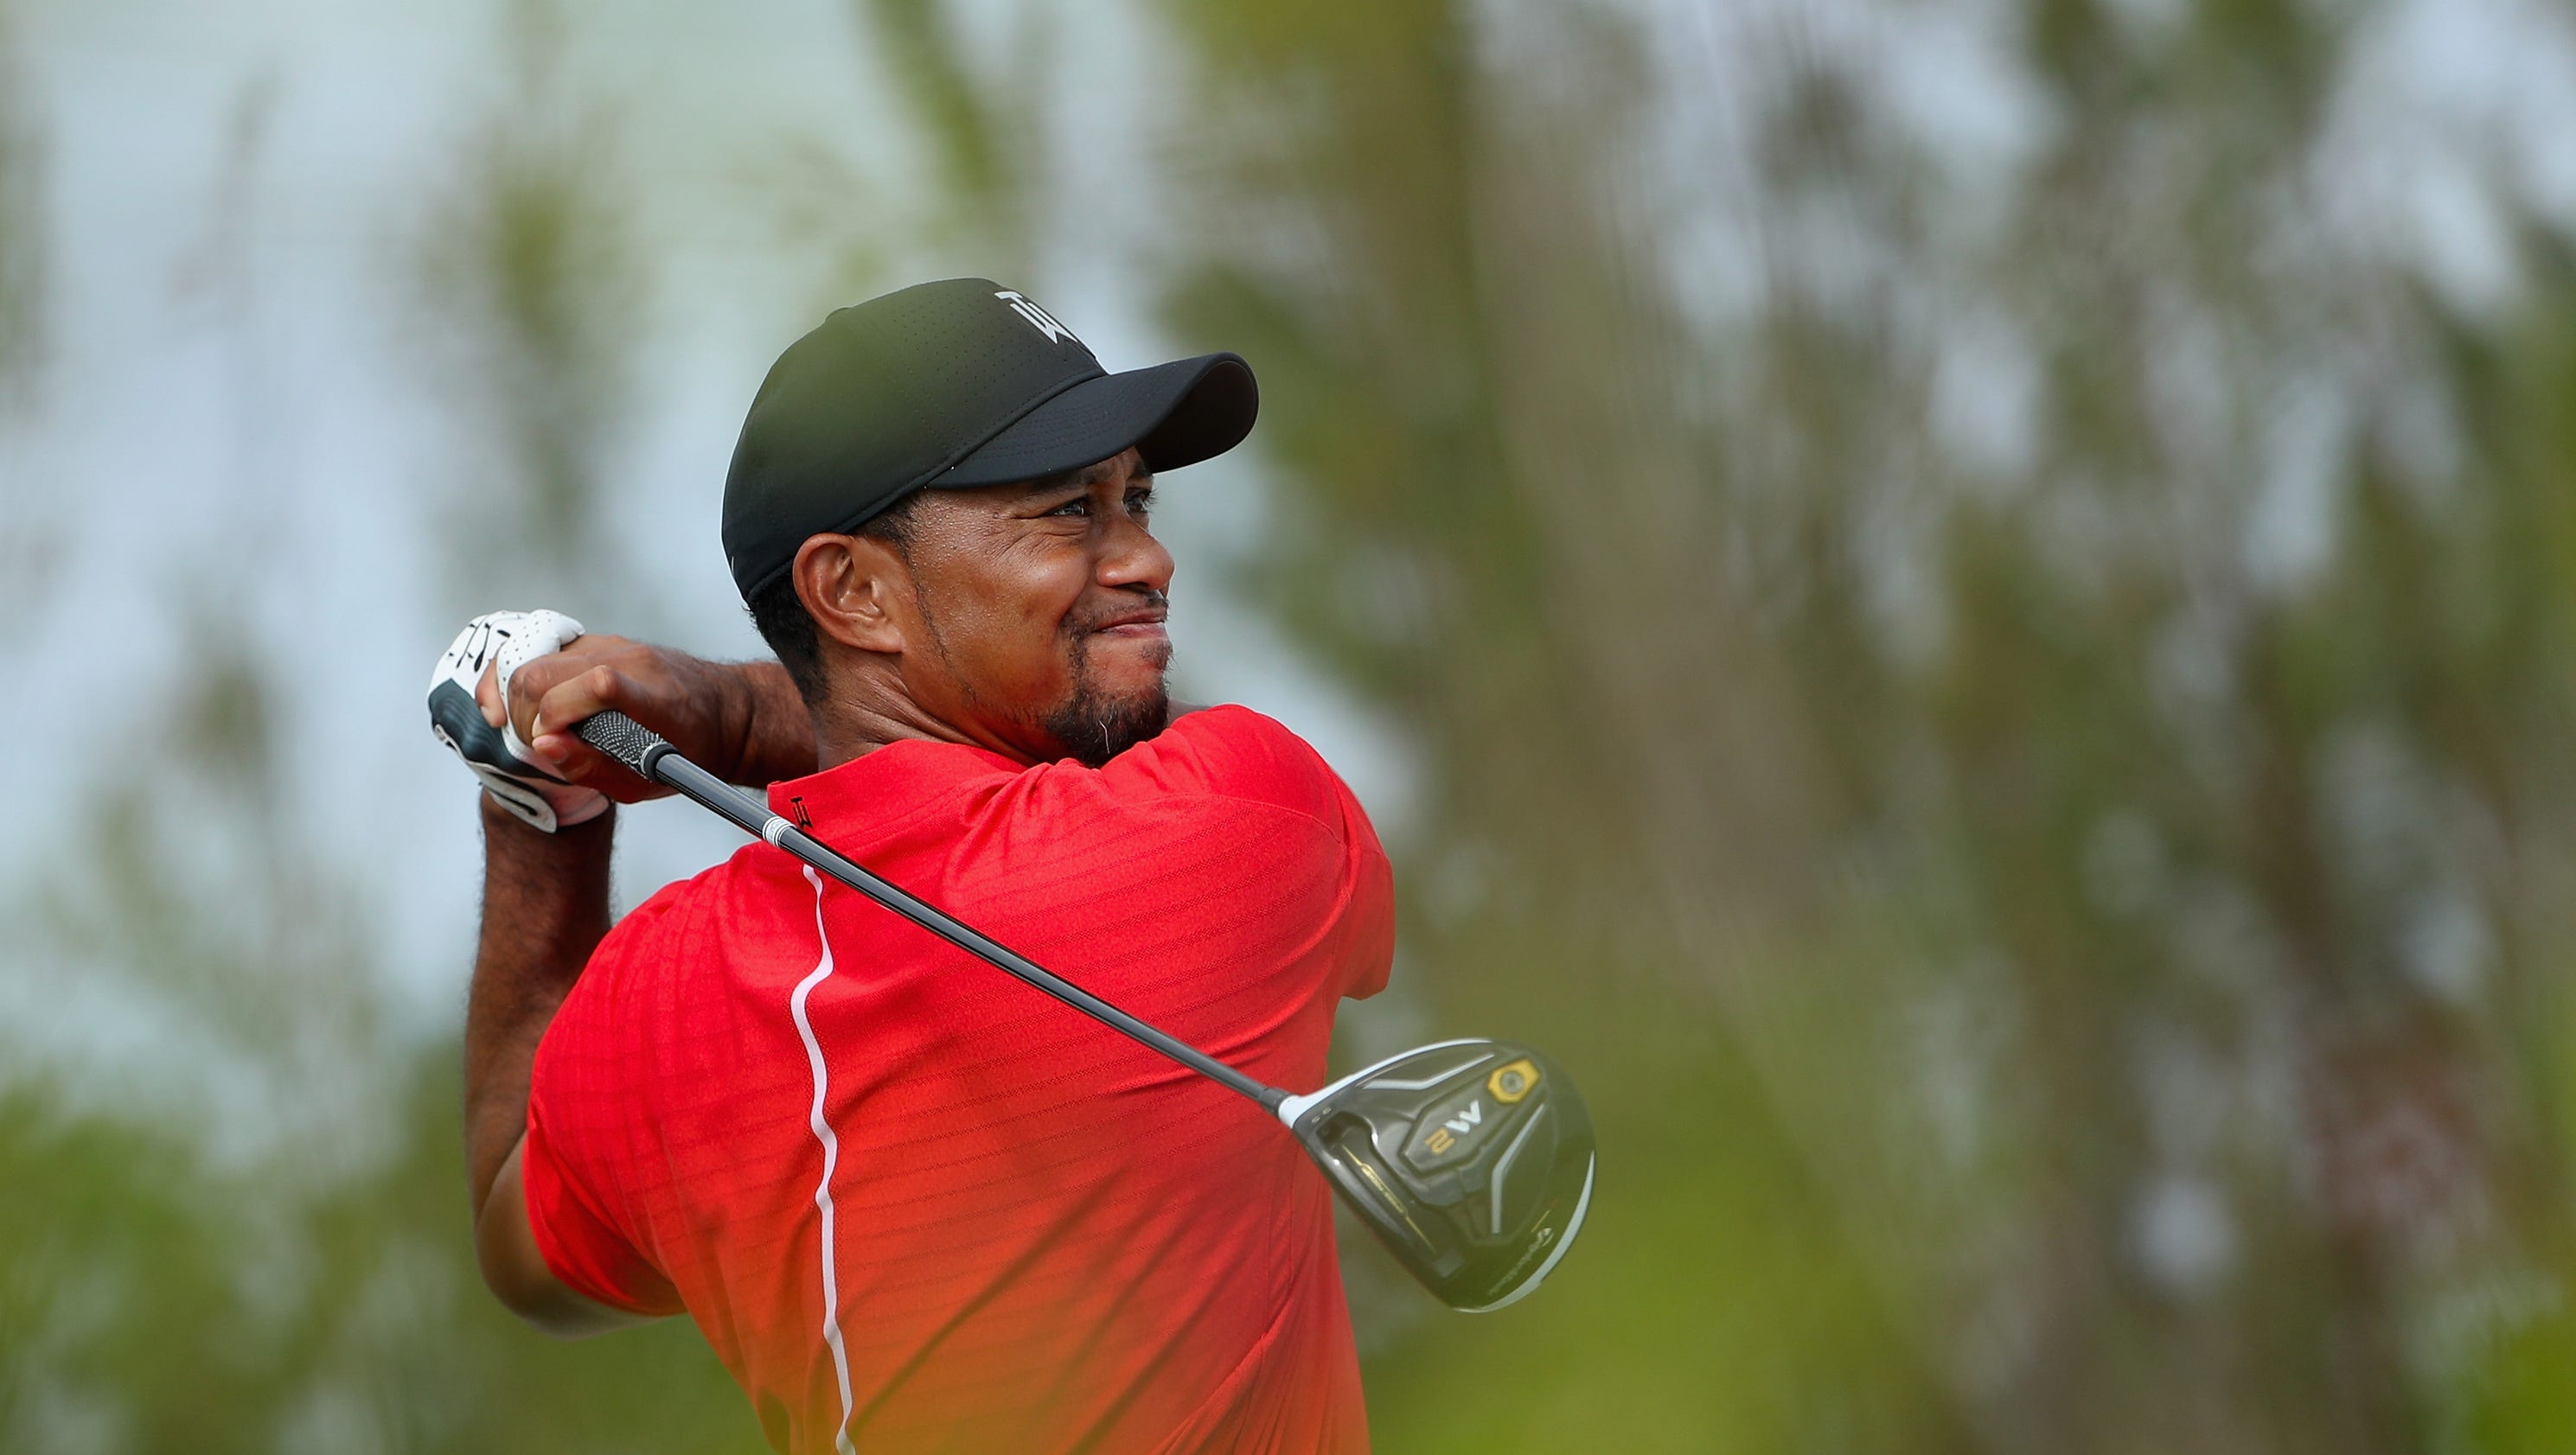 tiger woods u0026 39  return creates buzz  but will he win again